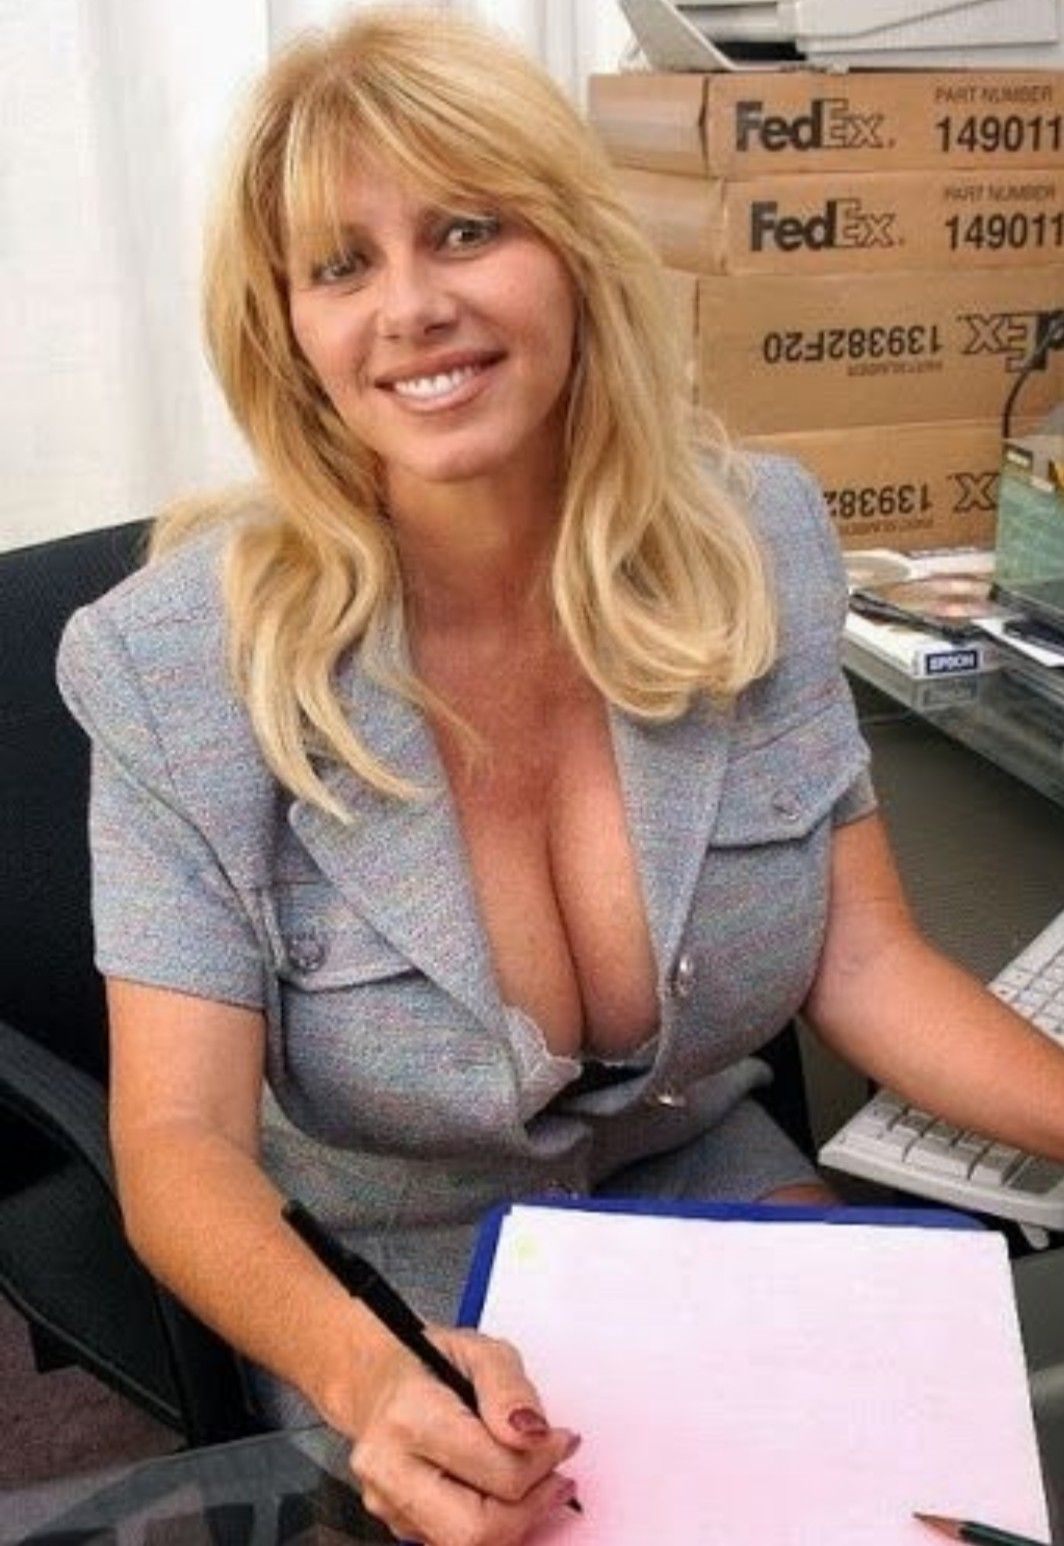 Captions for boob photo